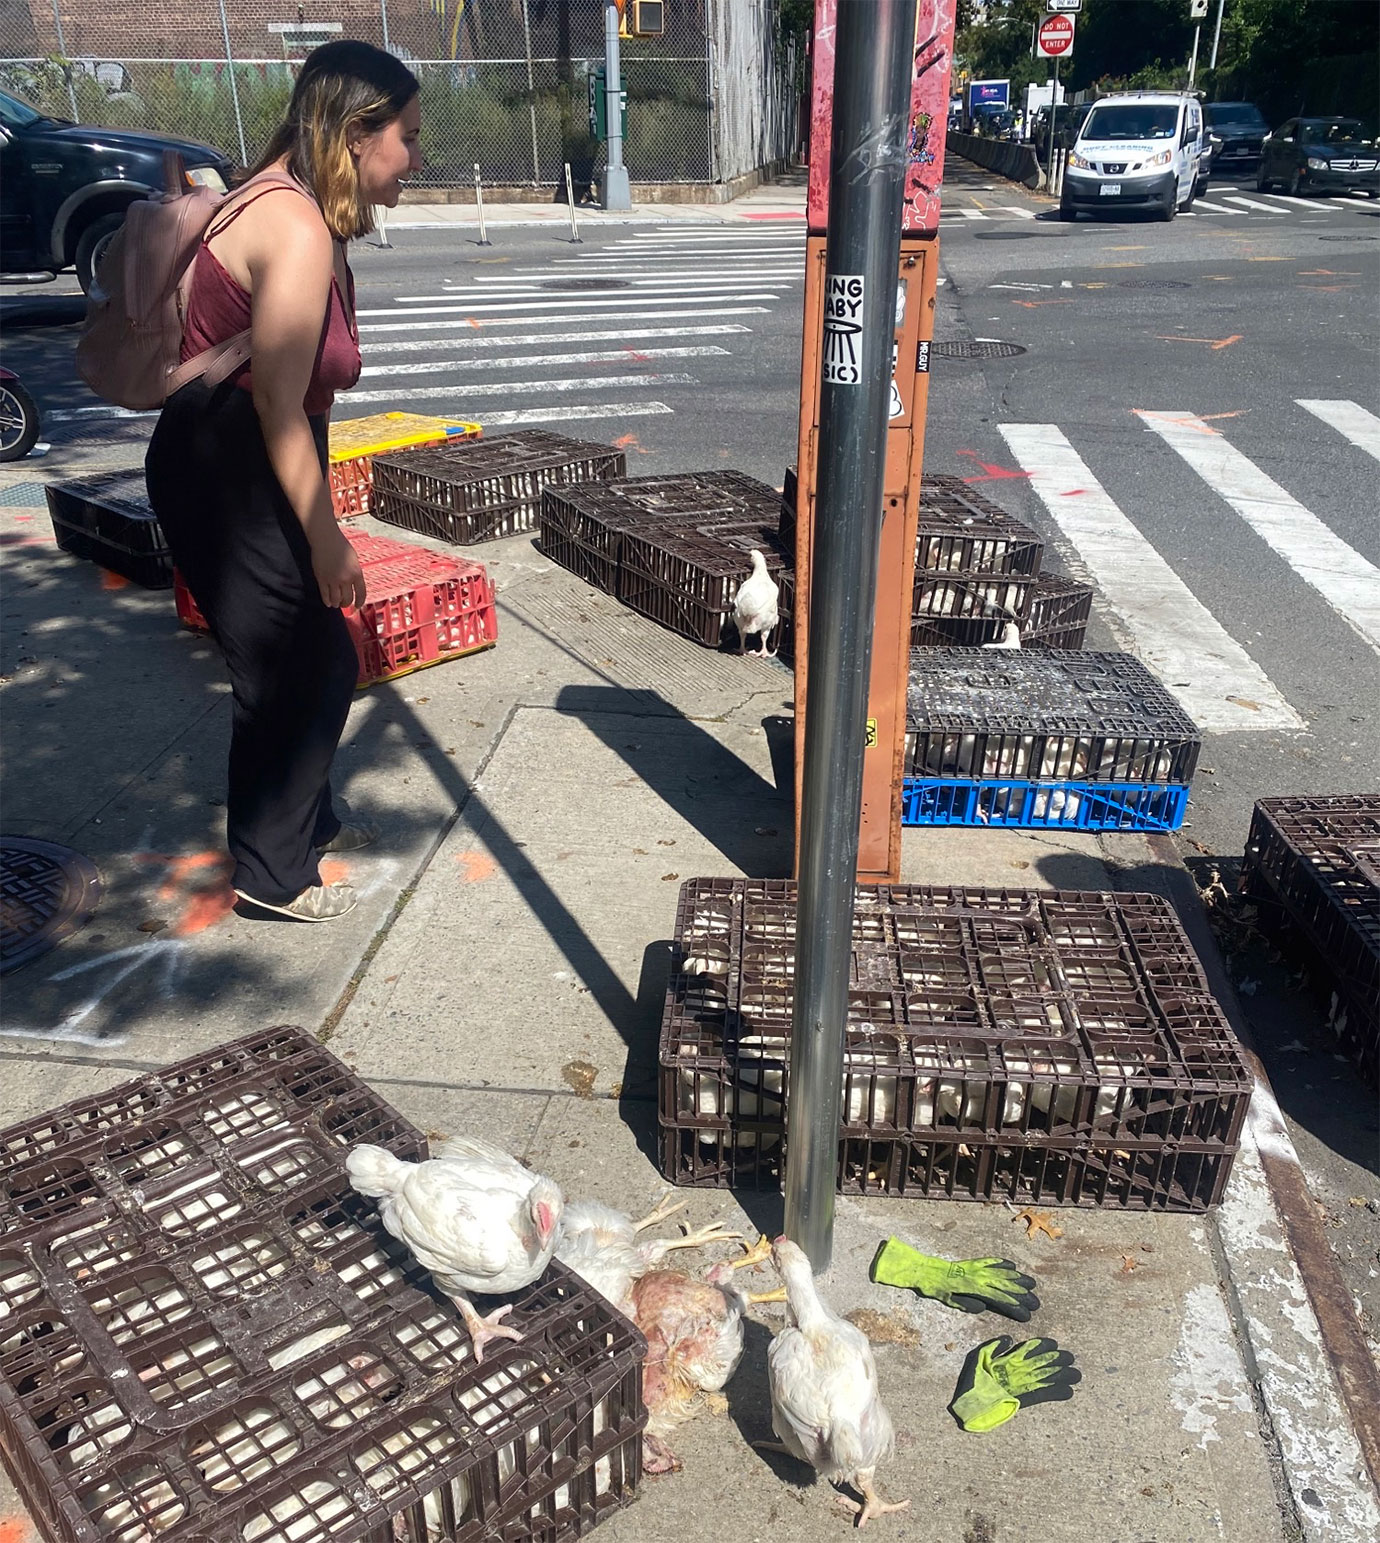 Chickens in crated and walking free on sidewalk after the crates fell off a truck